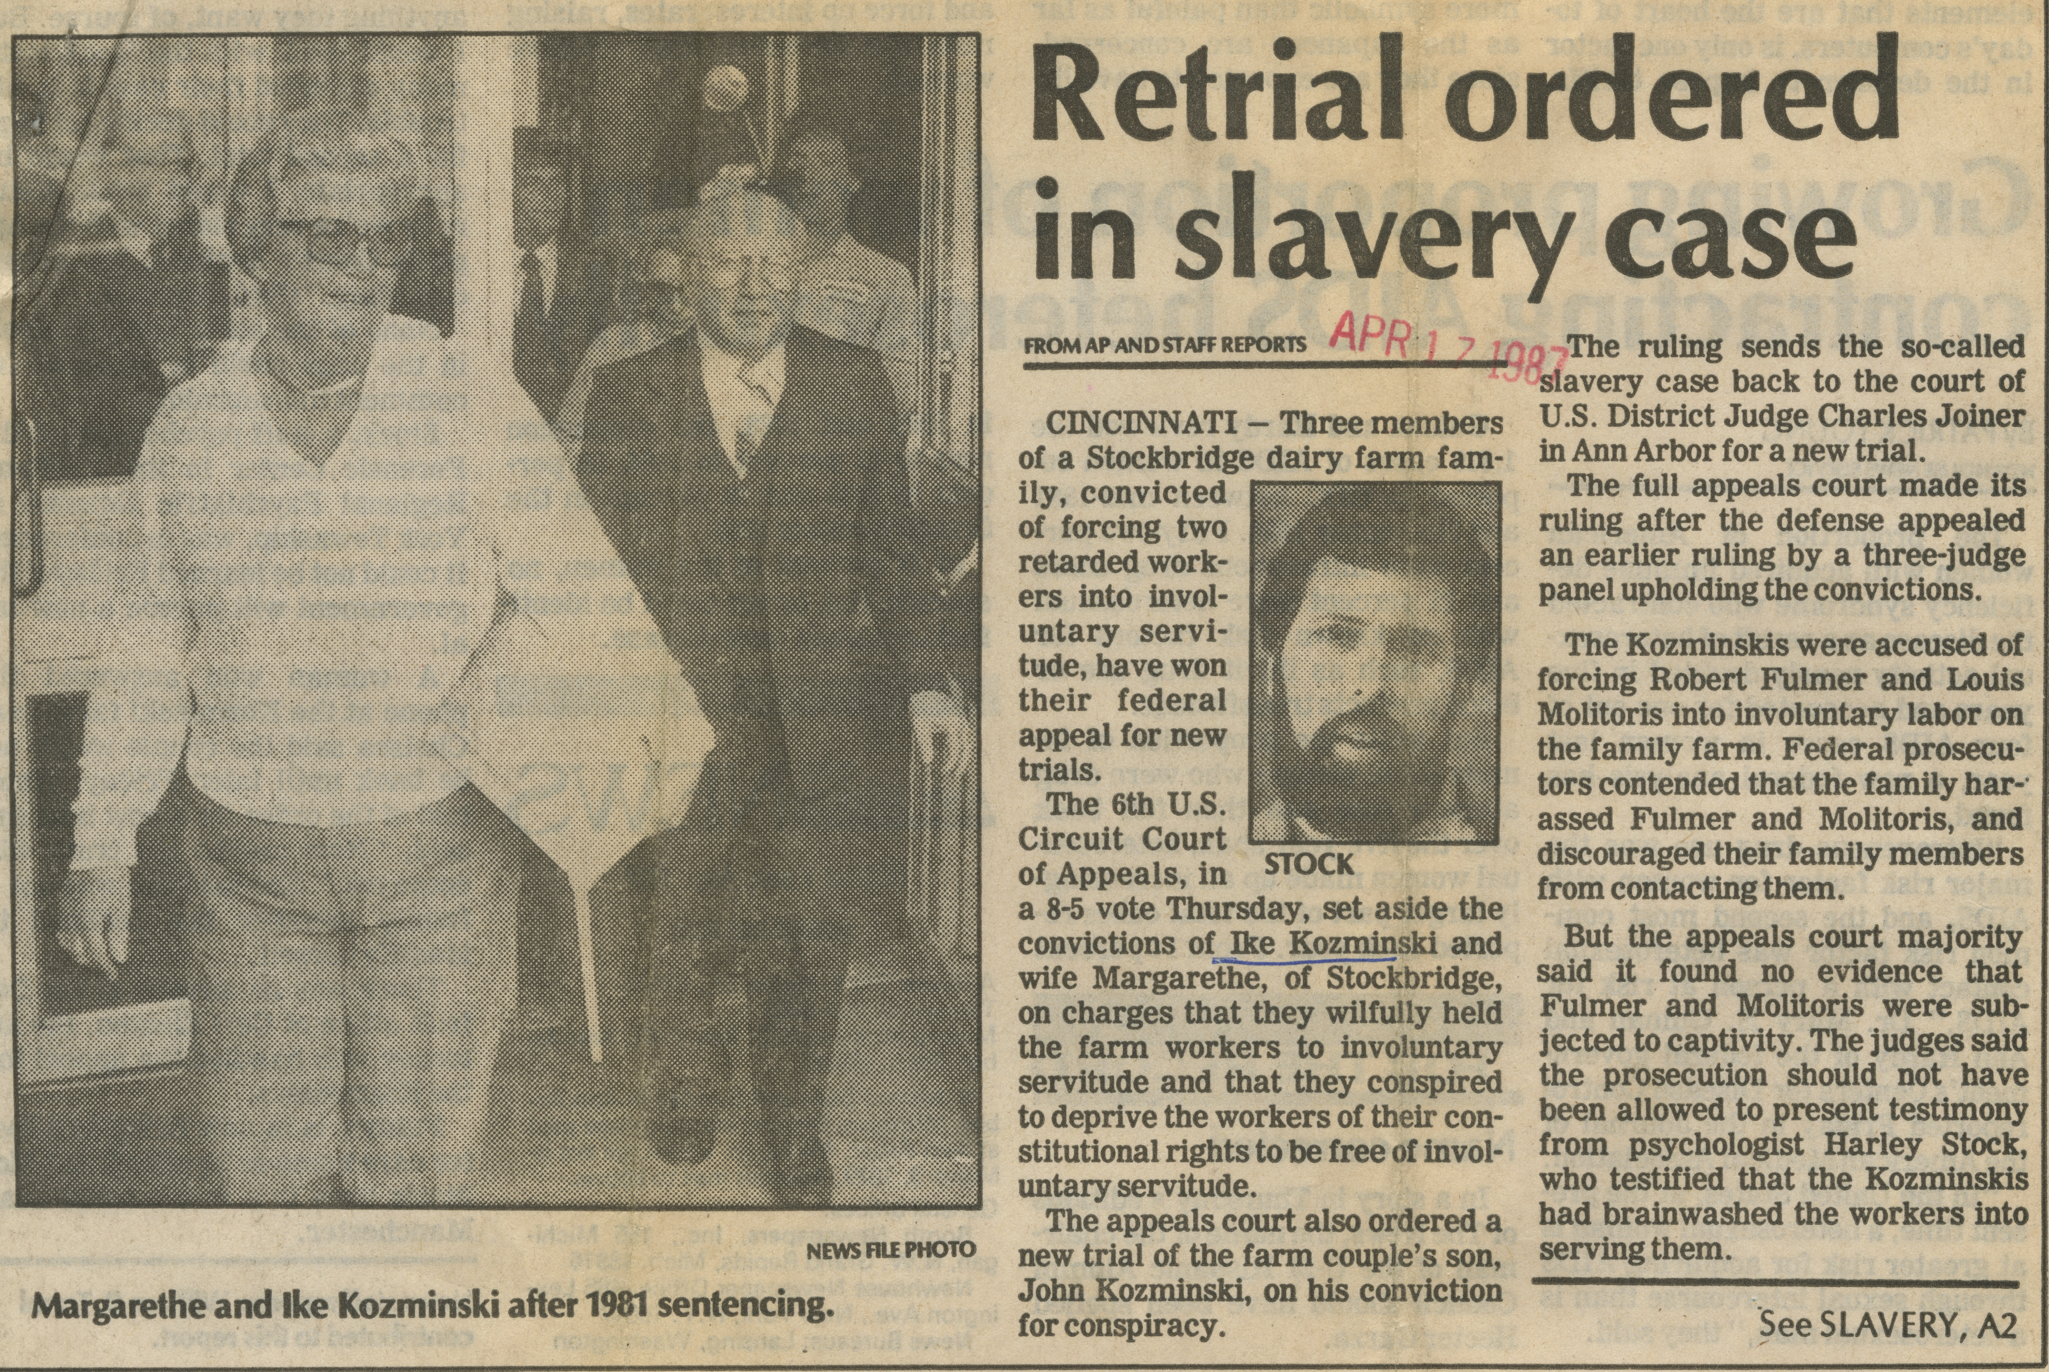 Retrial ordered in slavery case image